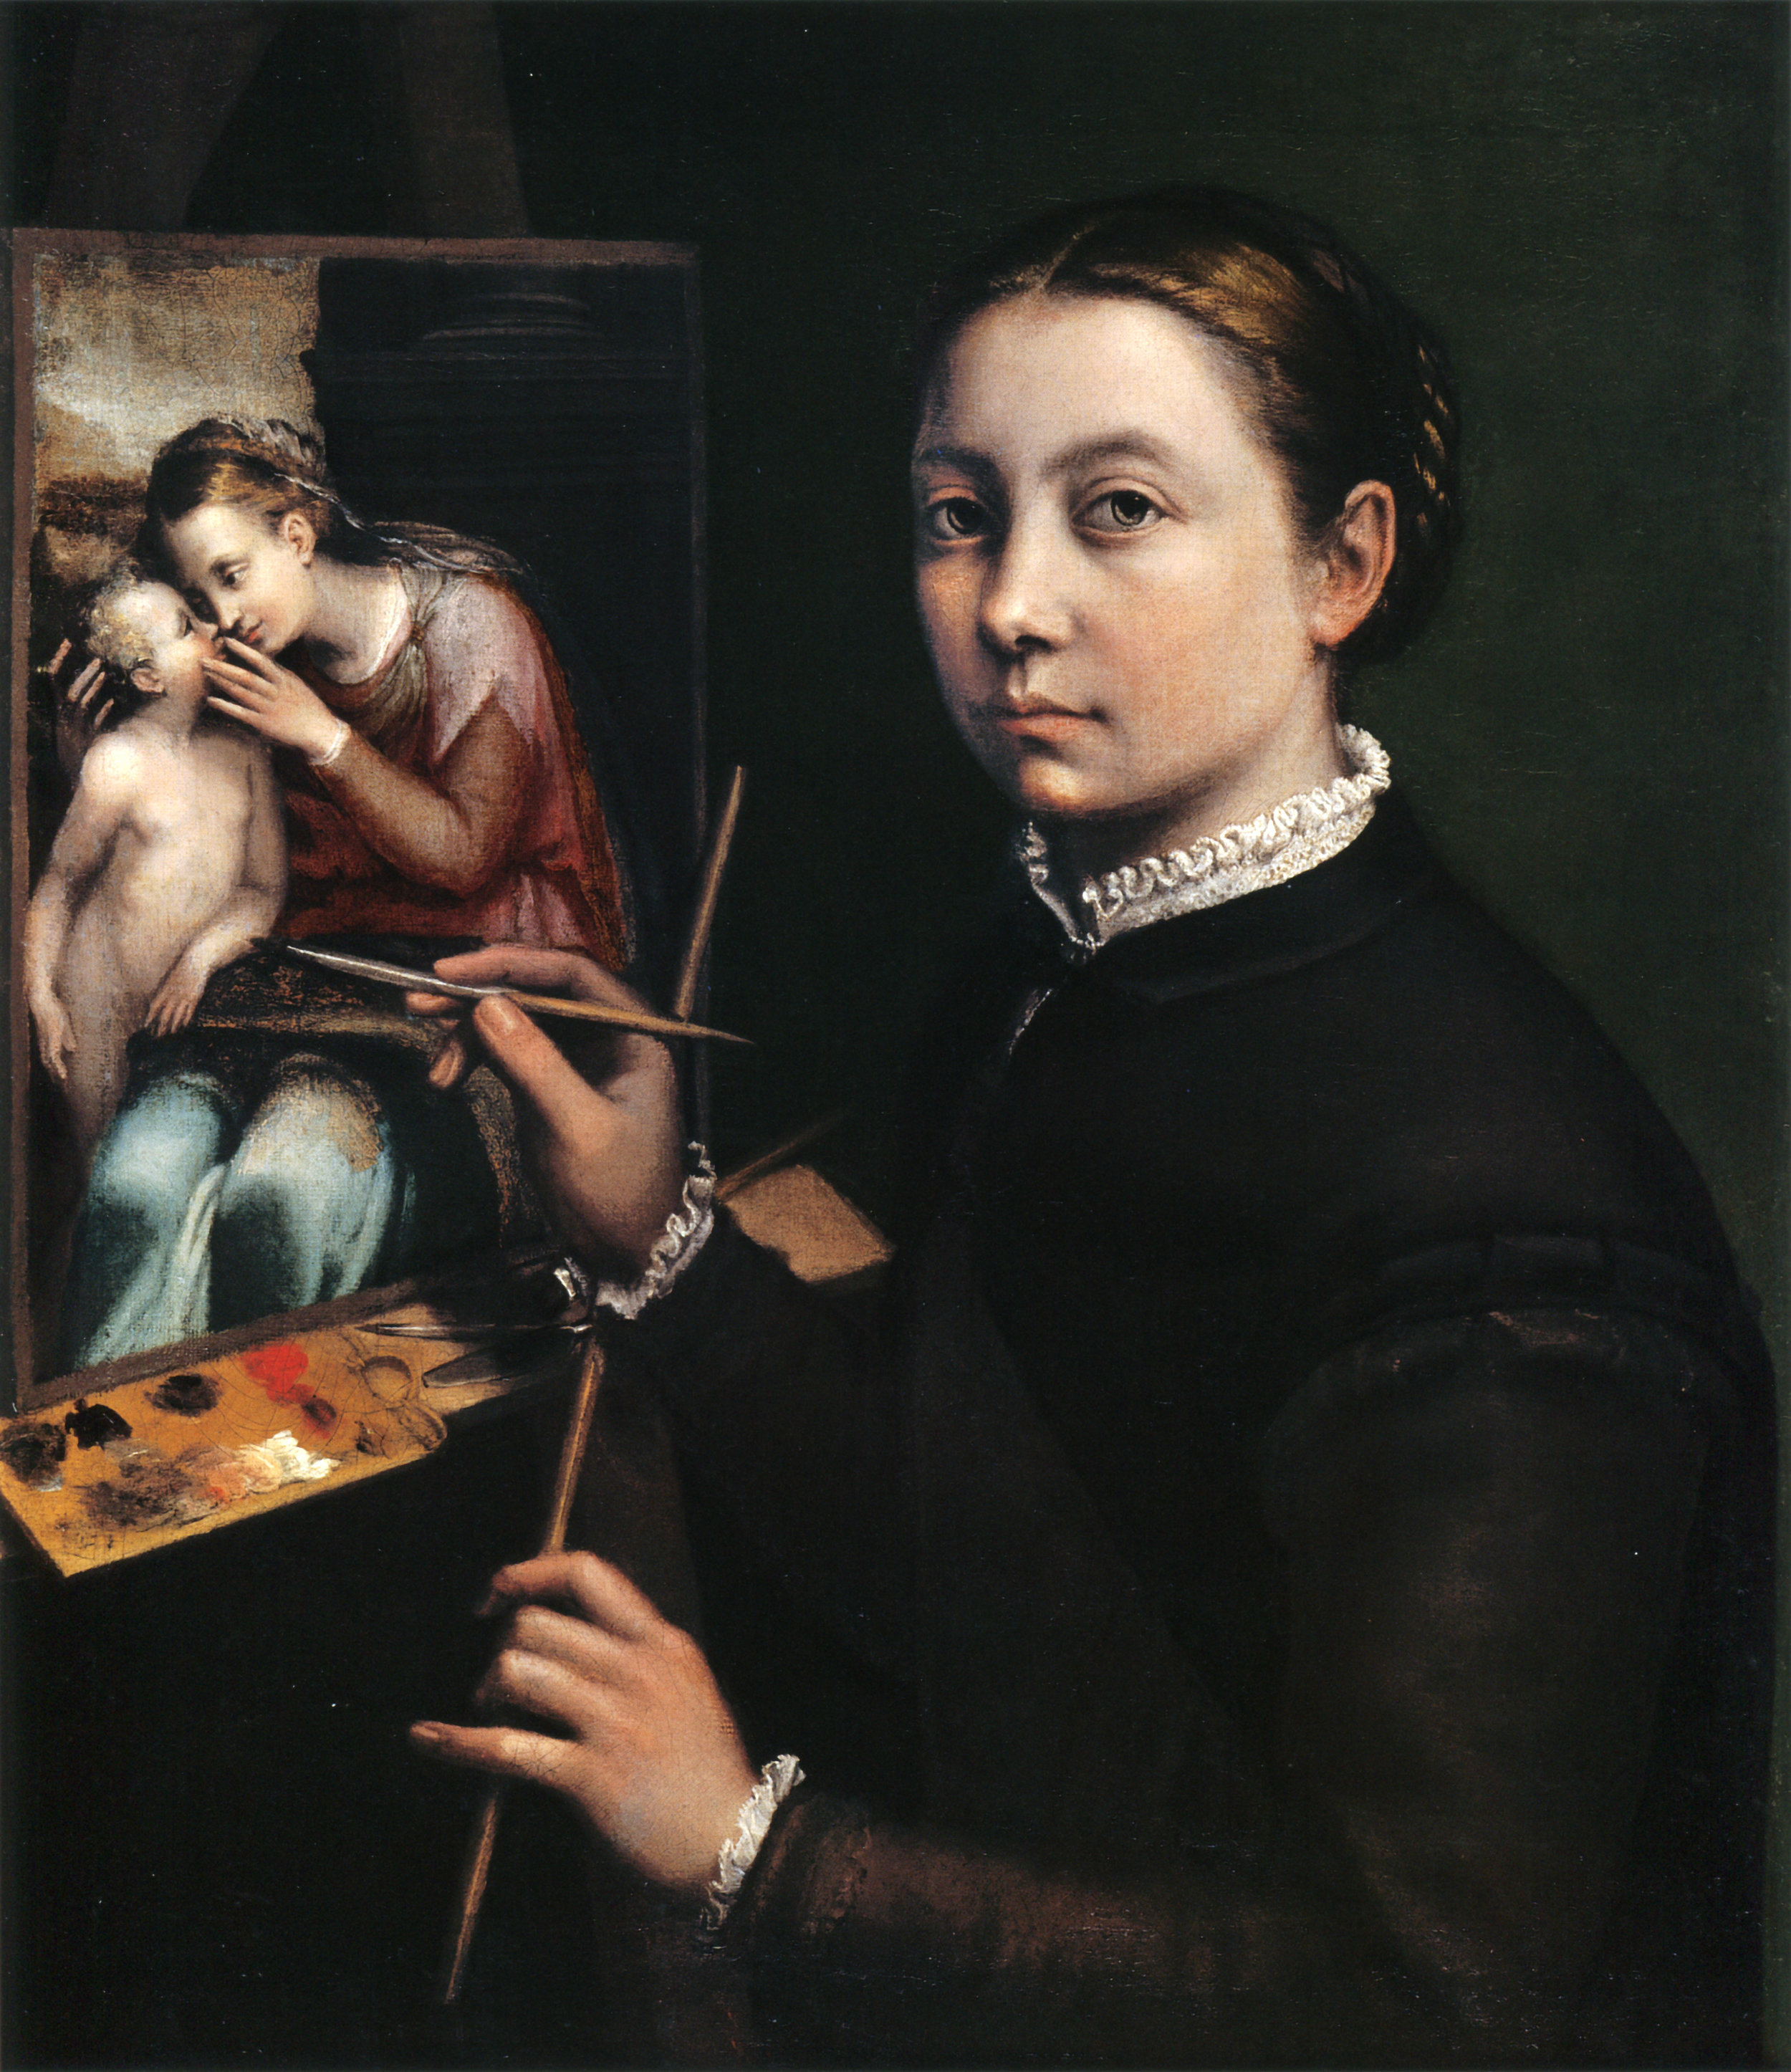 Self-portait at the Easel Painting a Devotional Panel, Sofonisba Anguissola (public domain).